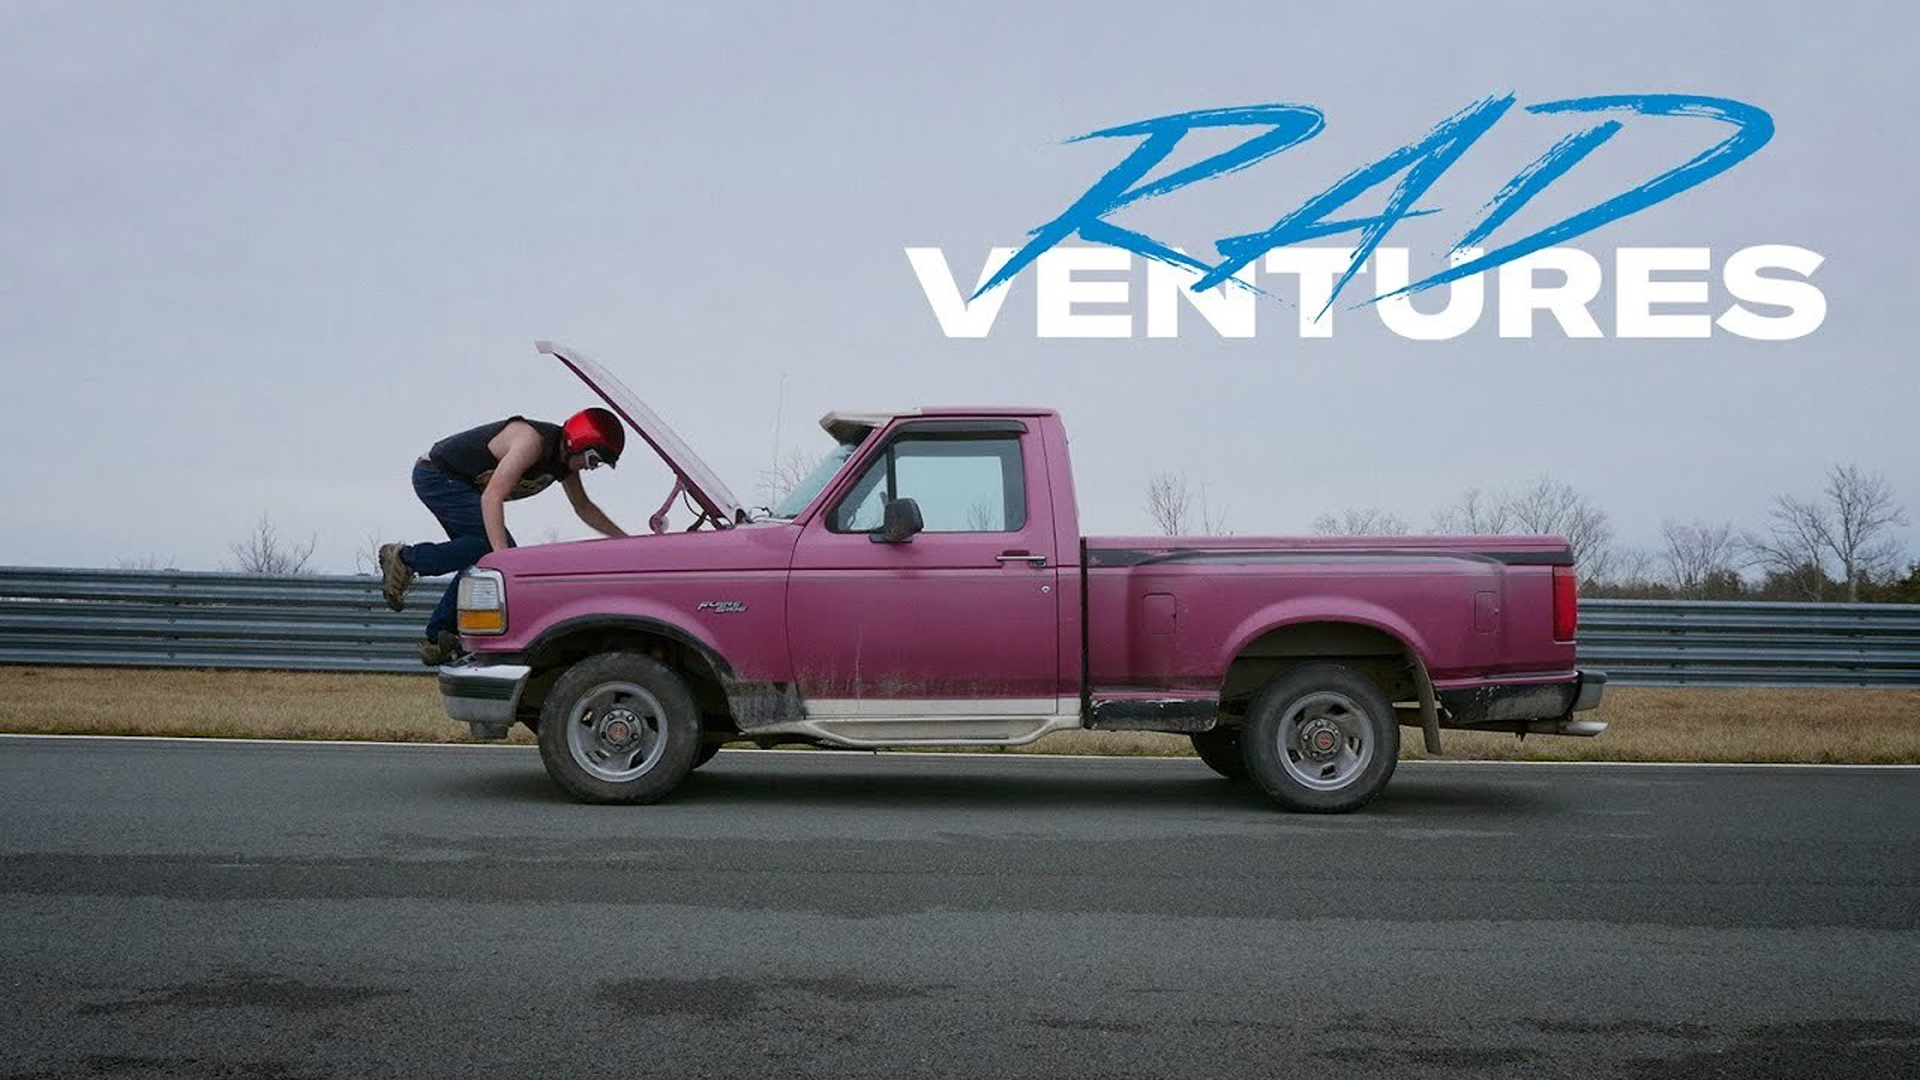 Ford F150 radventures show